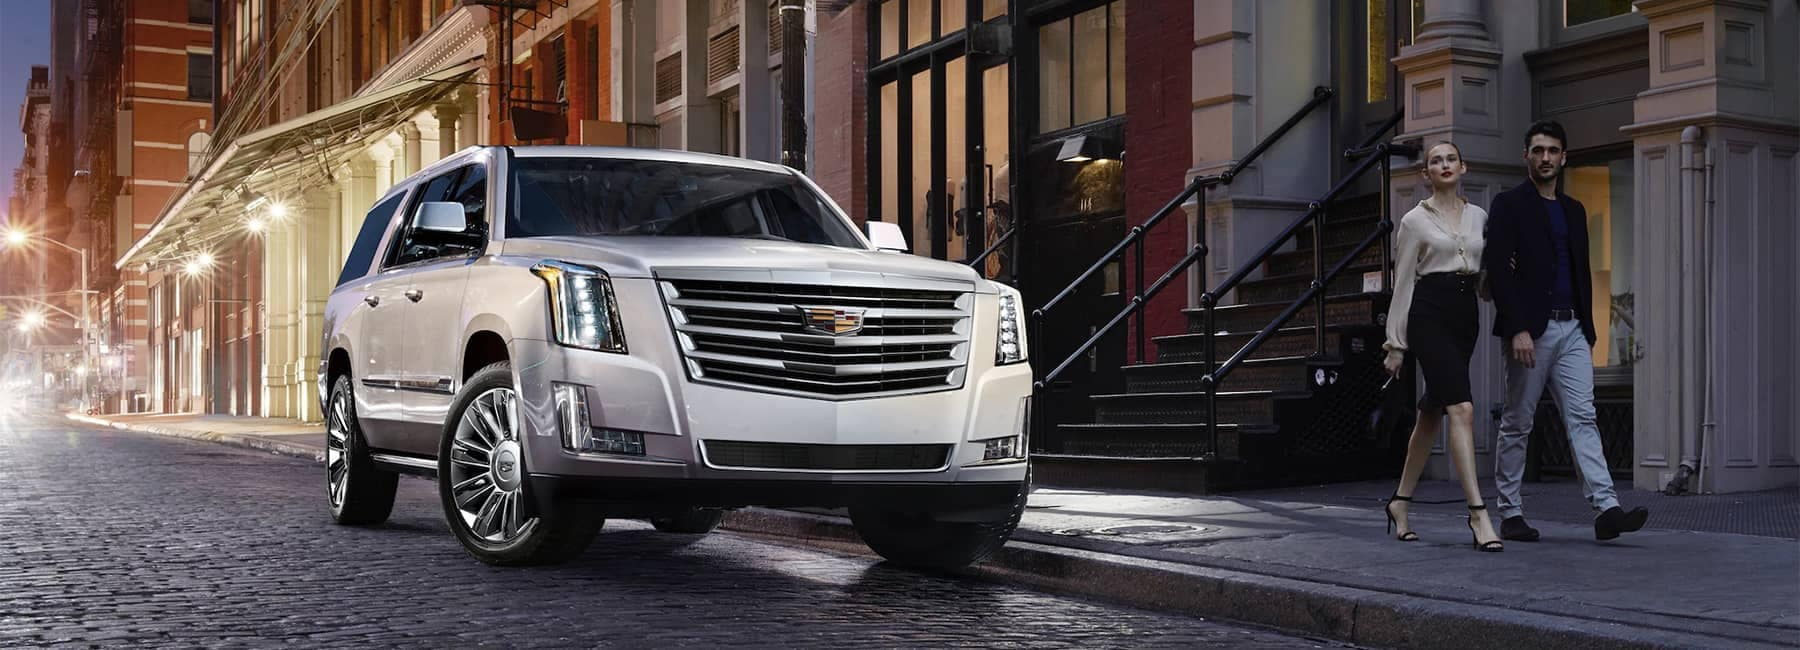 2020 Cadillac Escalade Full-Size SUV Parked